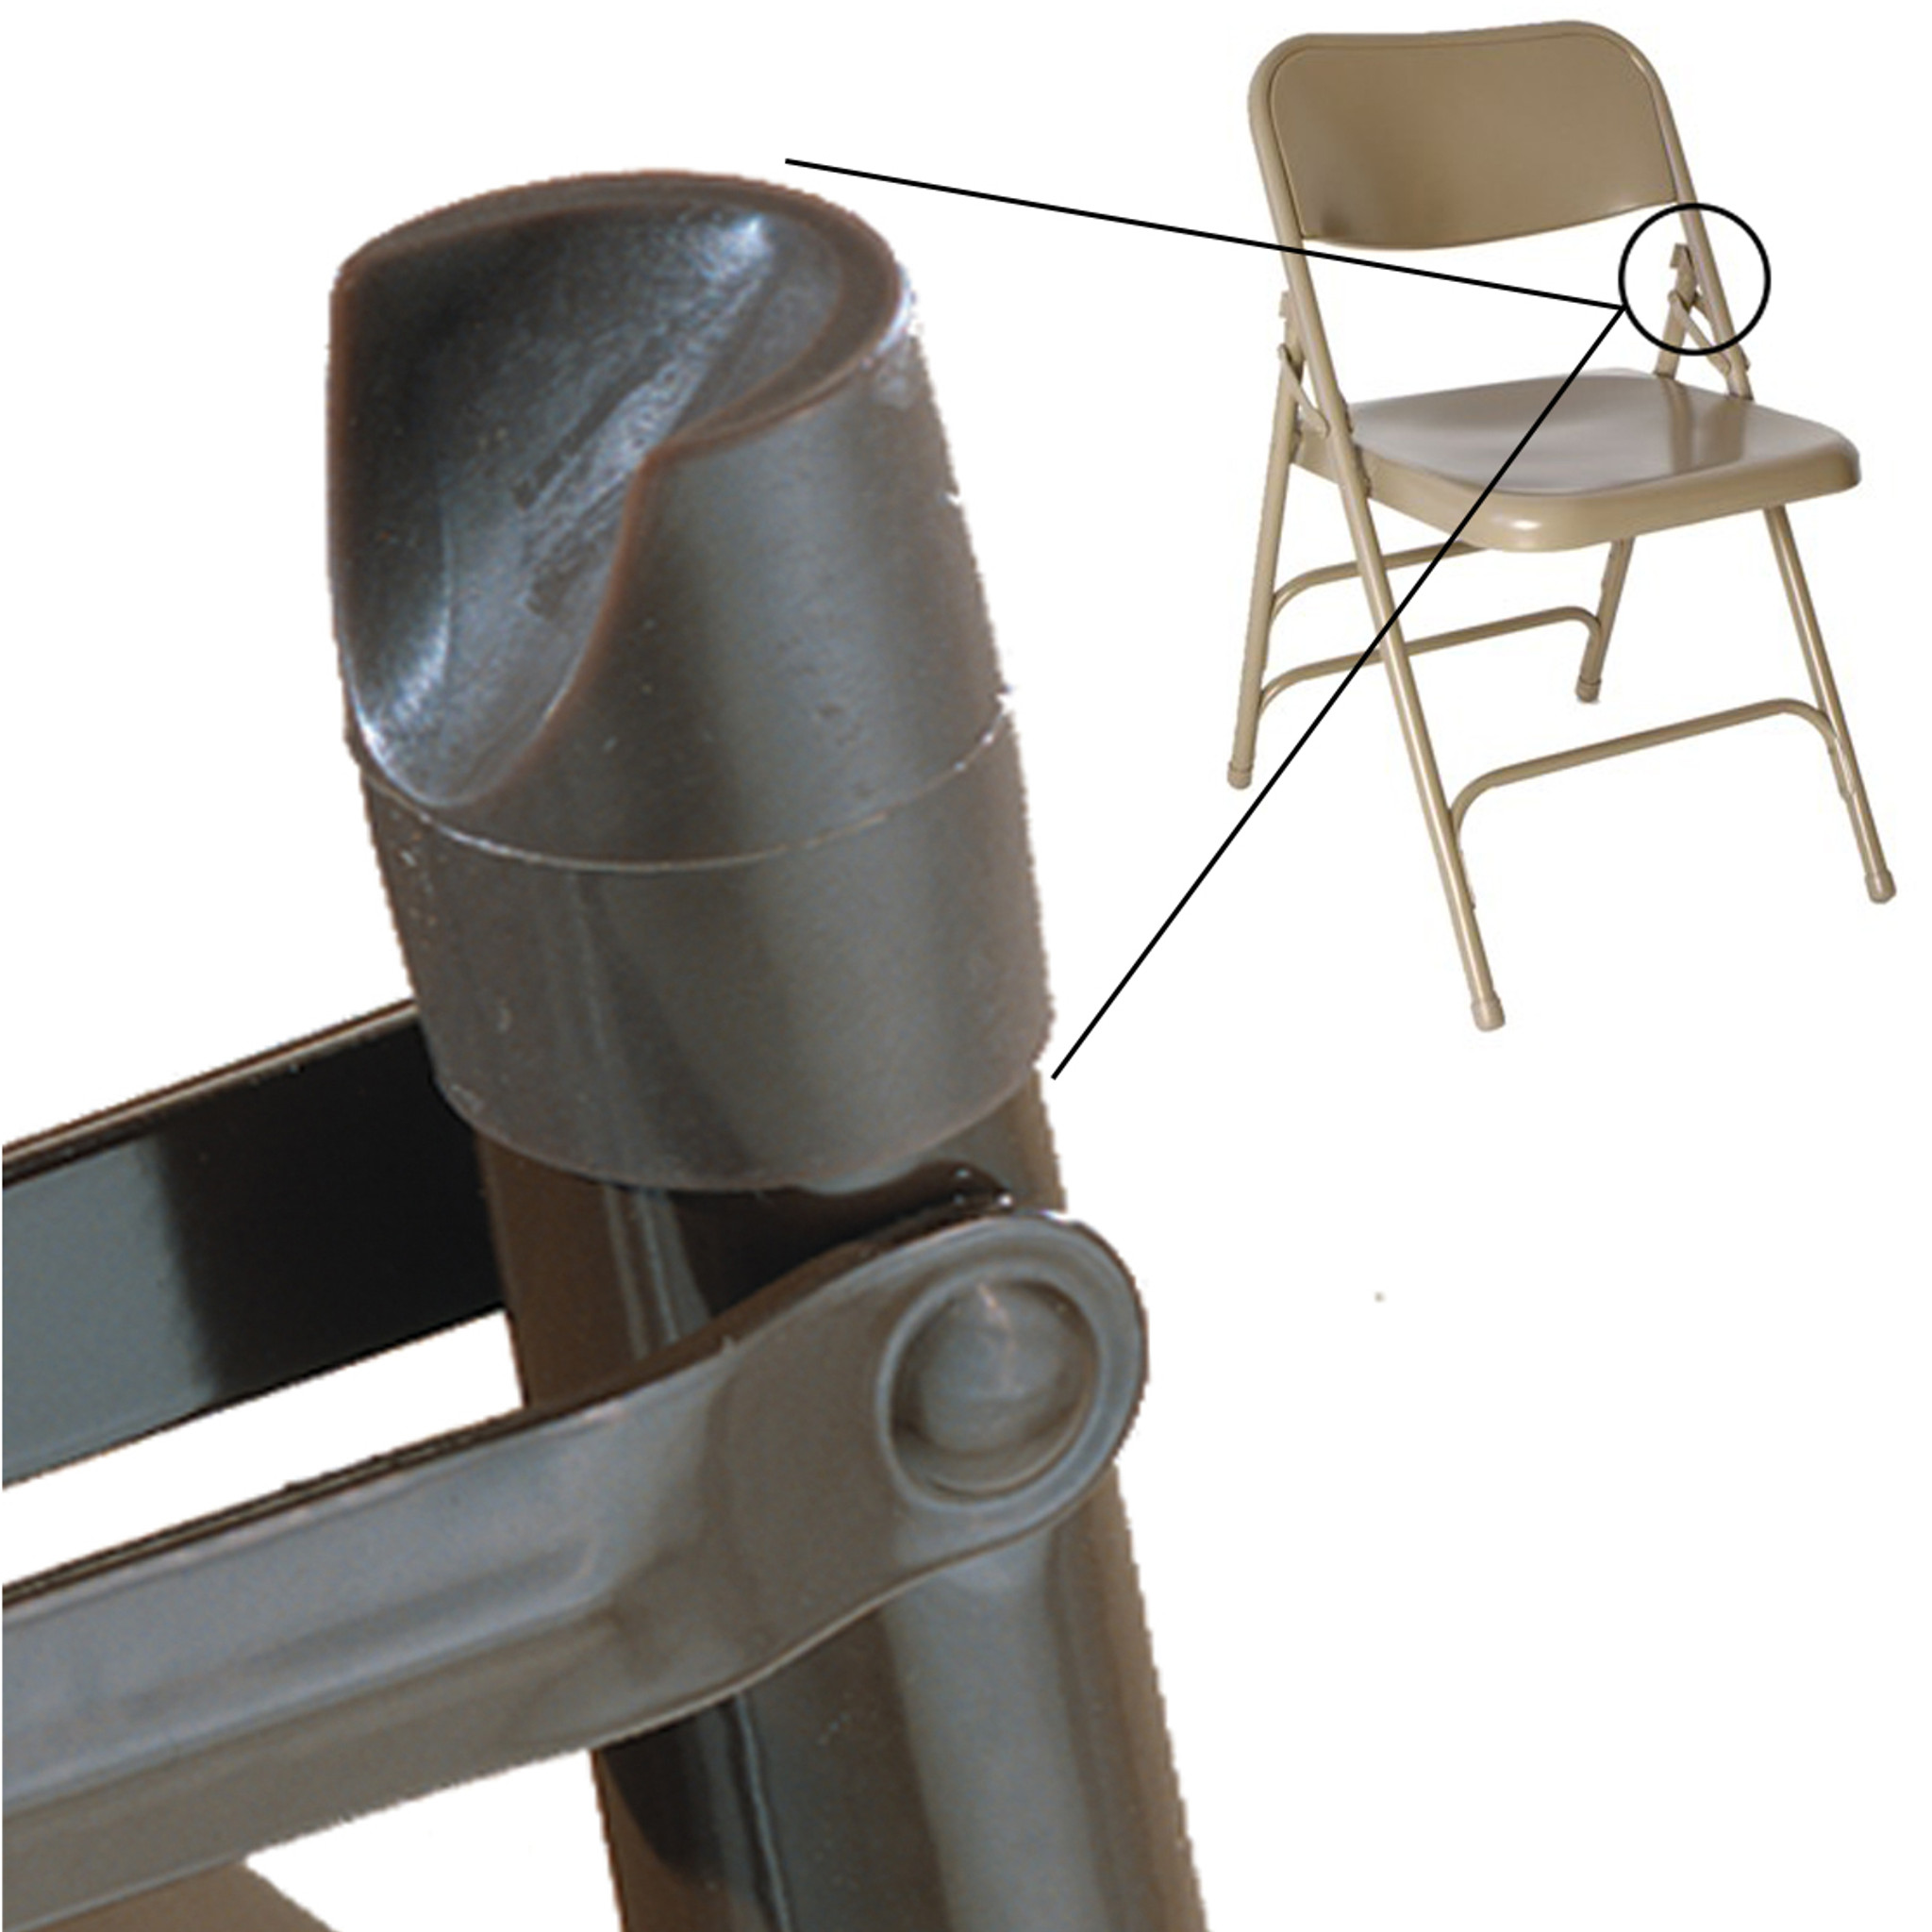 Outdoor folding chair parts -  Individual Pieces Plastic Stability Caps For Metal And Padded Folding Chairs